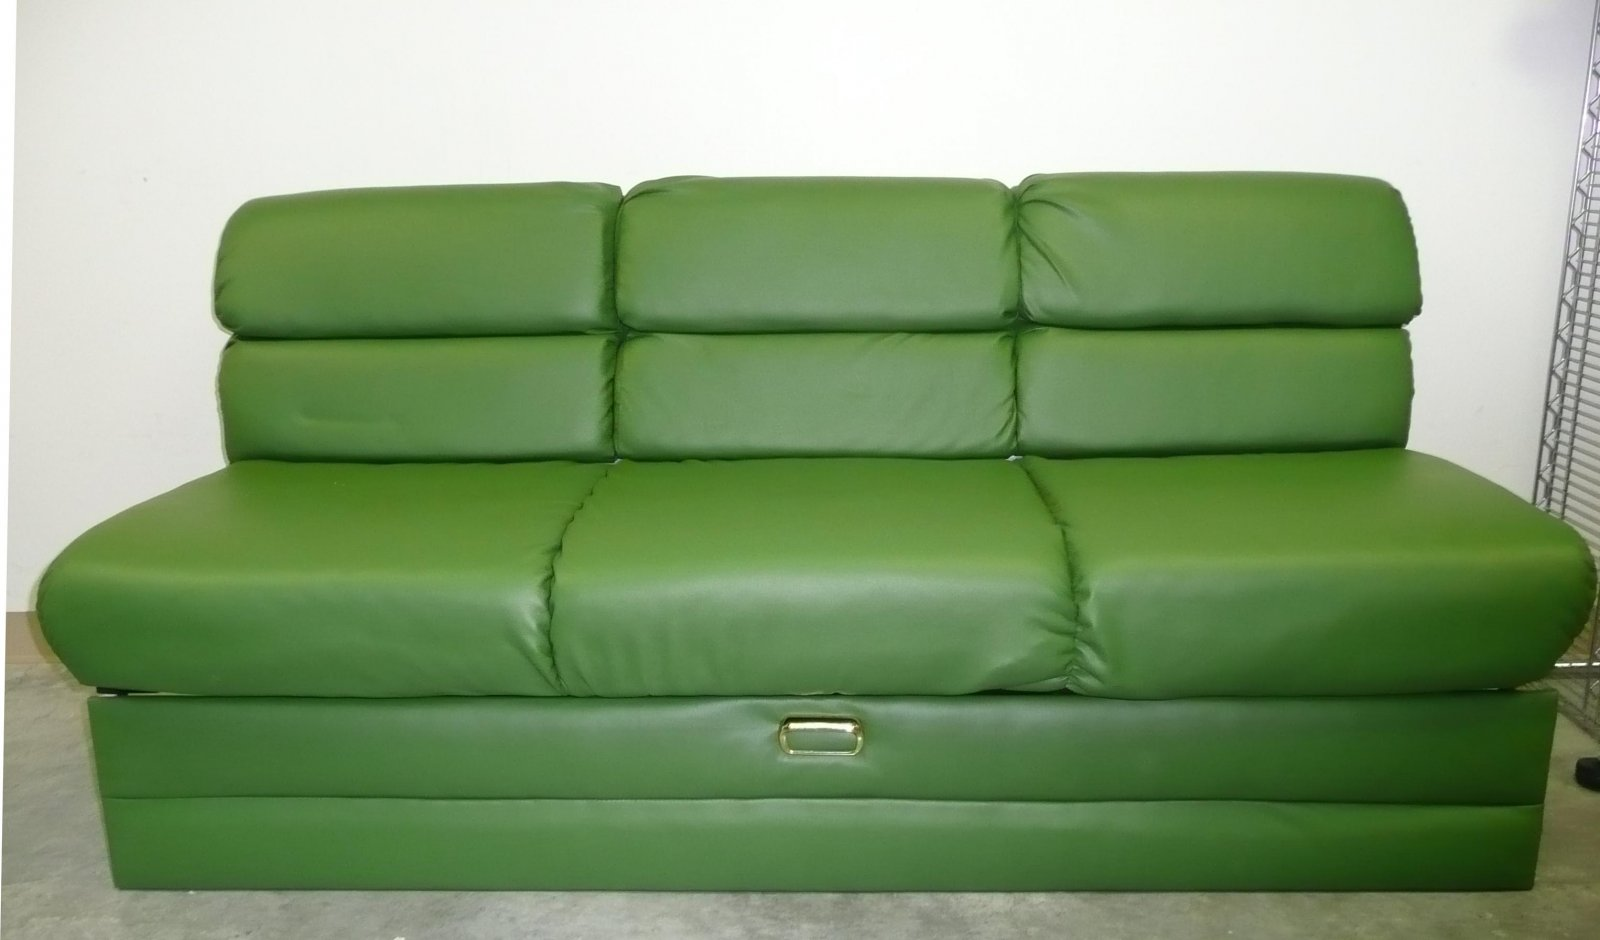 Click image for larger version  Name:Couch 1.jpg Views:135 Size:111.7 KB ID:144355